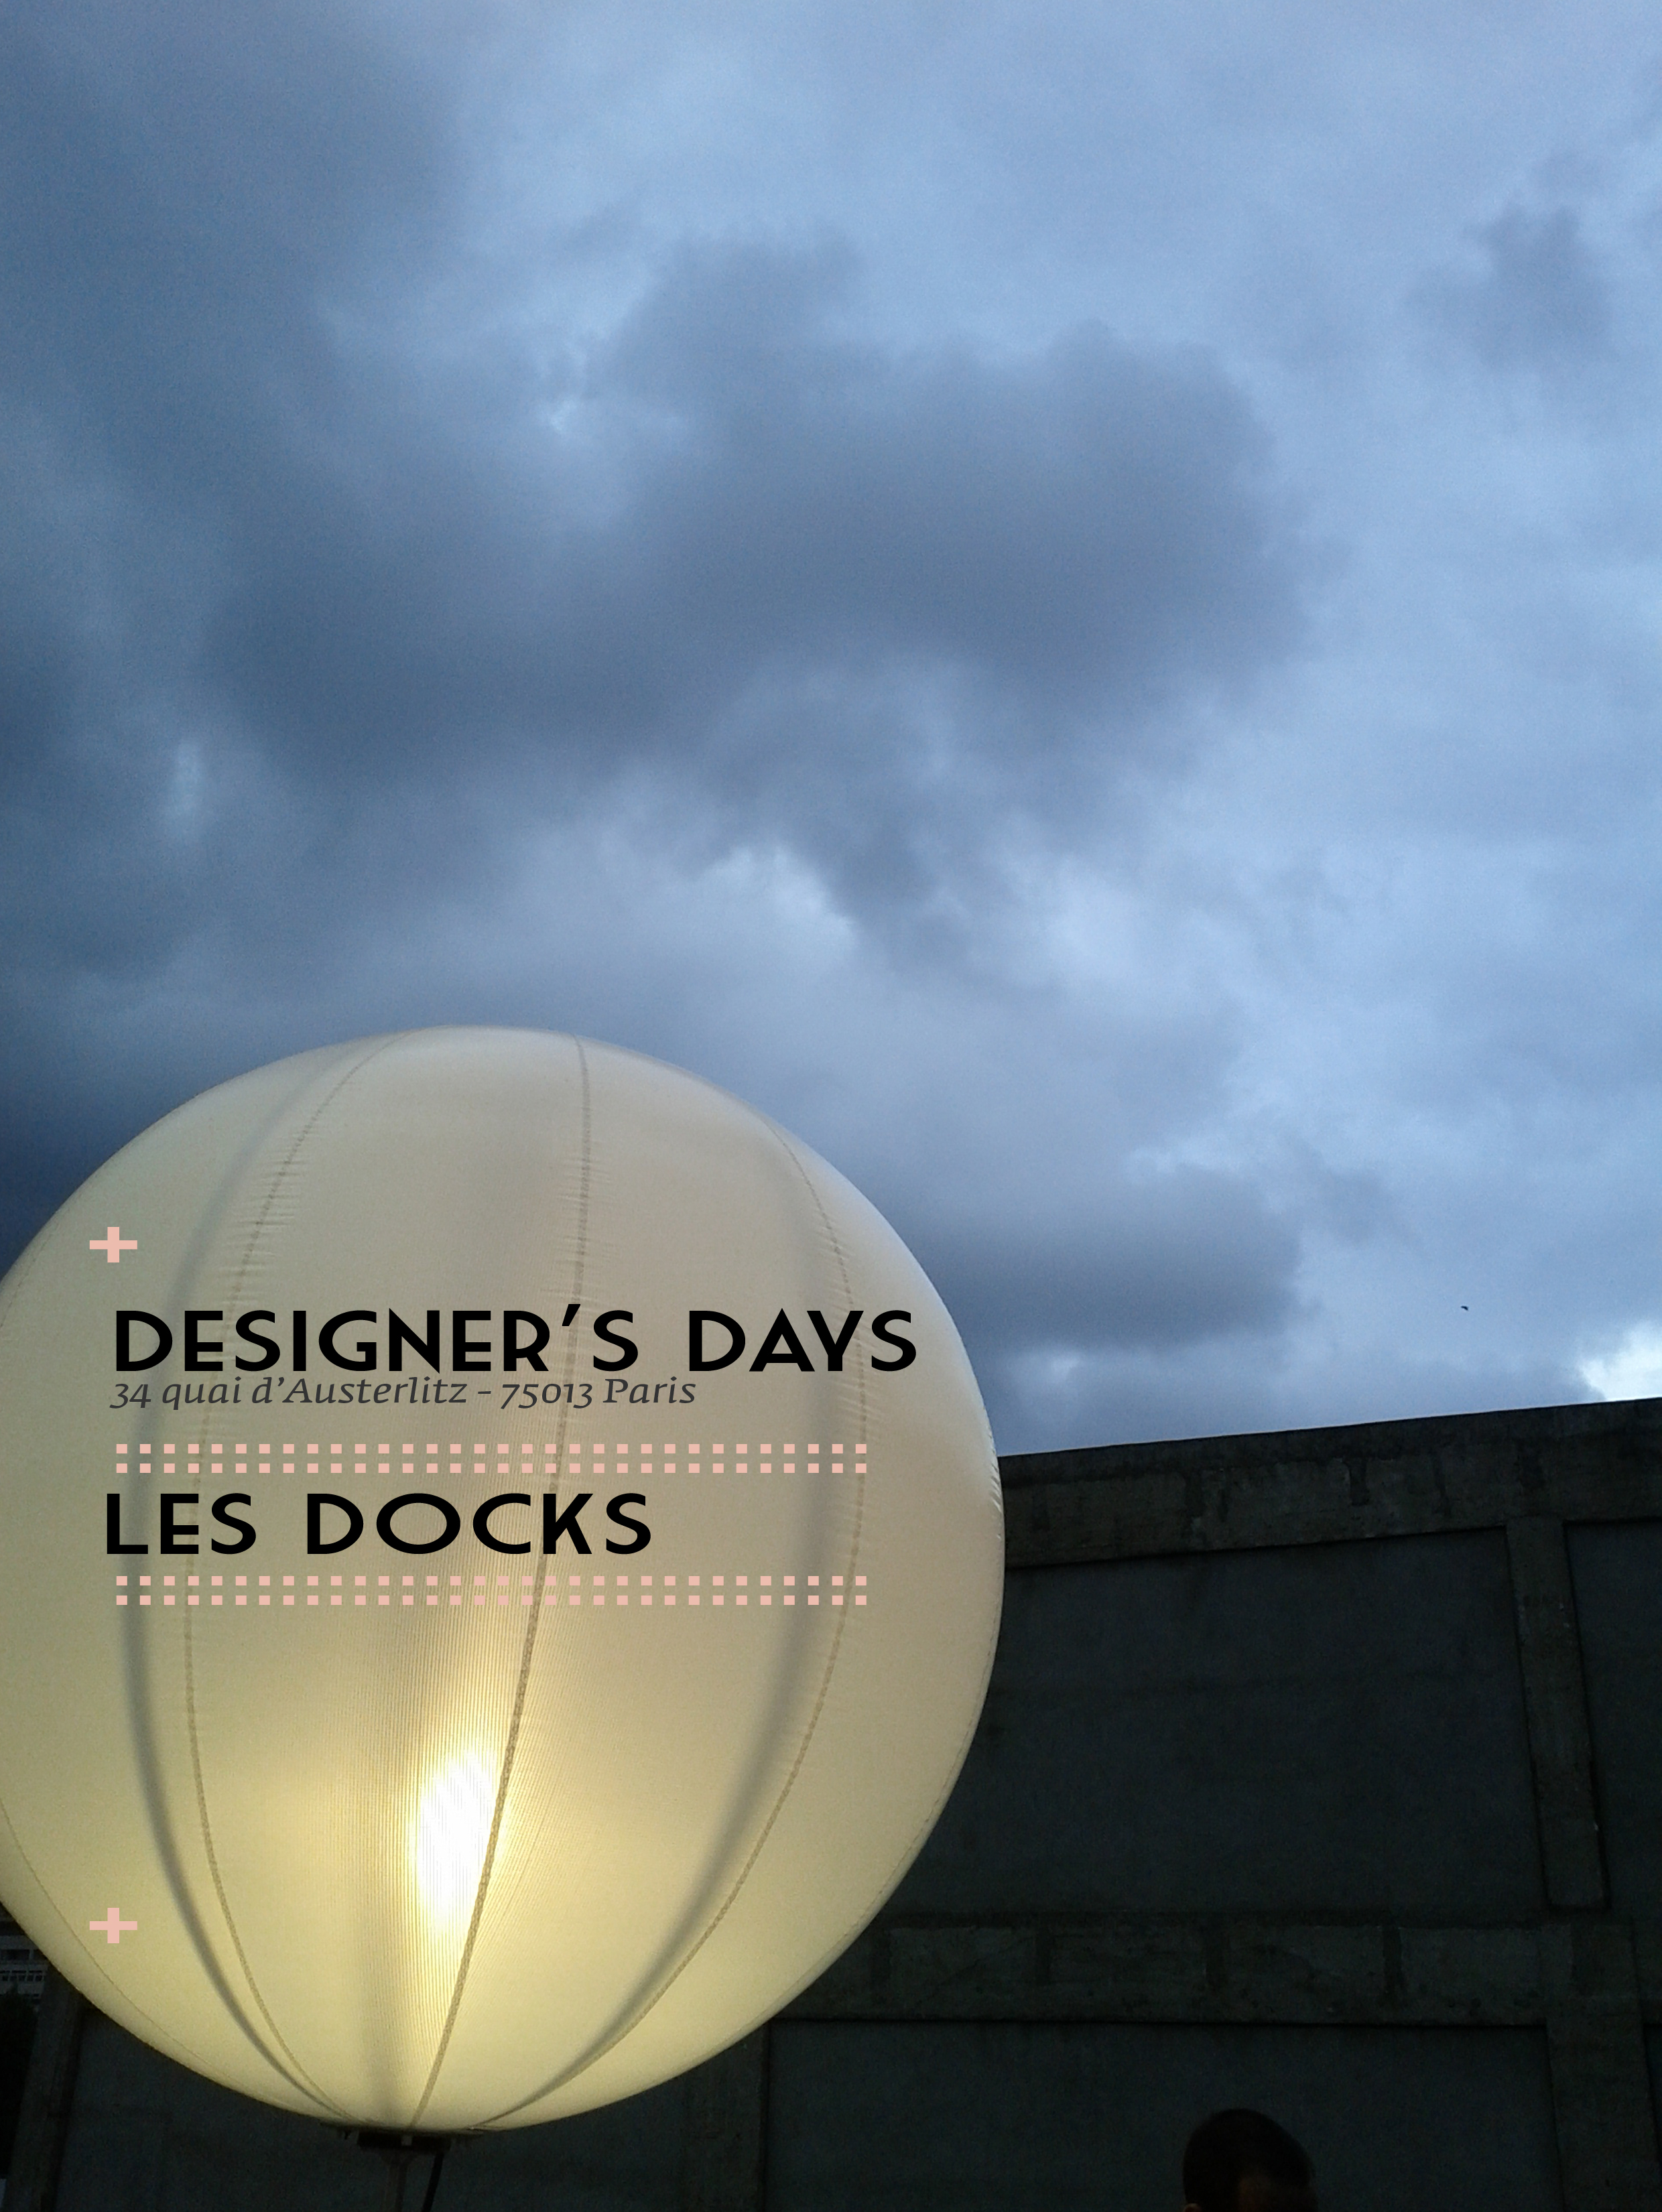 designers-days-docks-paris-by-le-polyedre_1